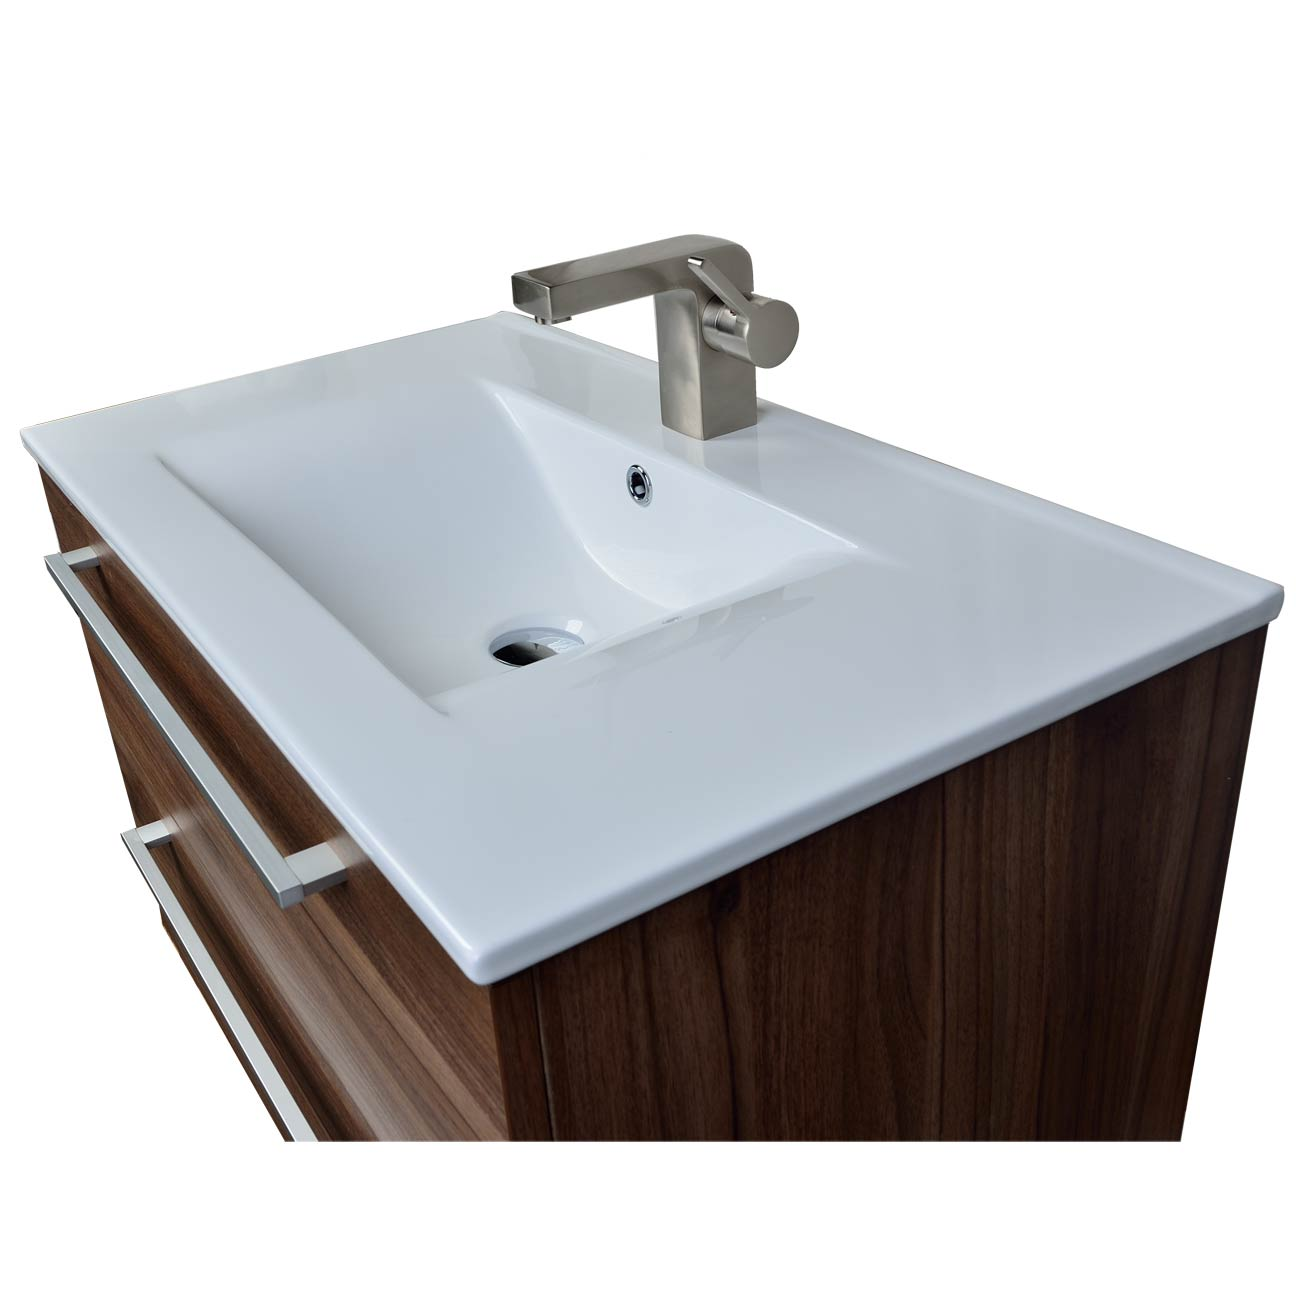 vanities ace top white vanity inch bathroom sink single vision canada